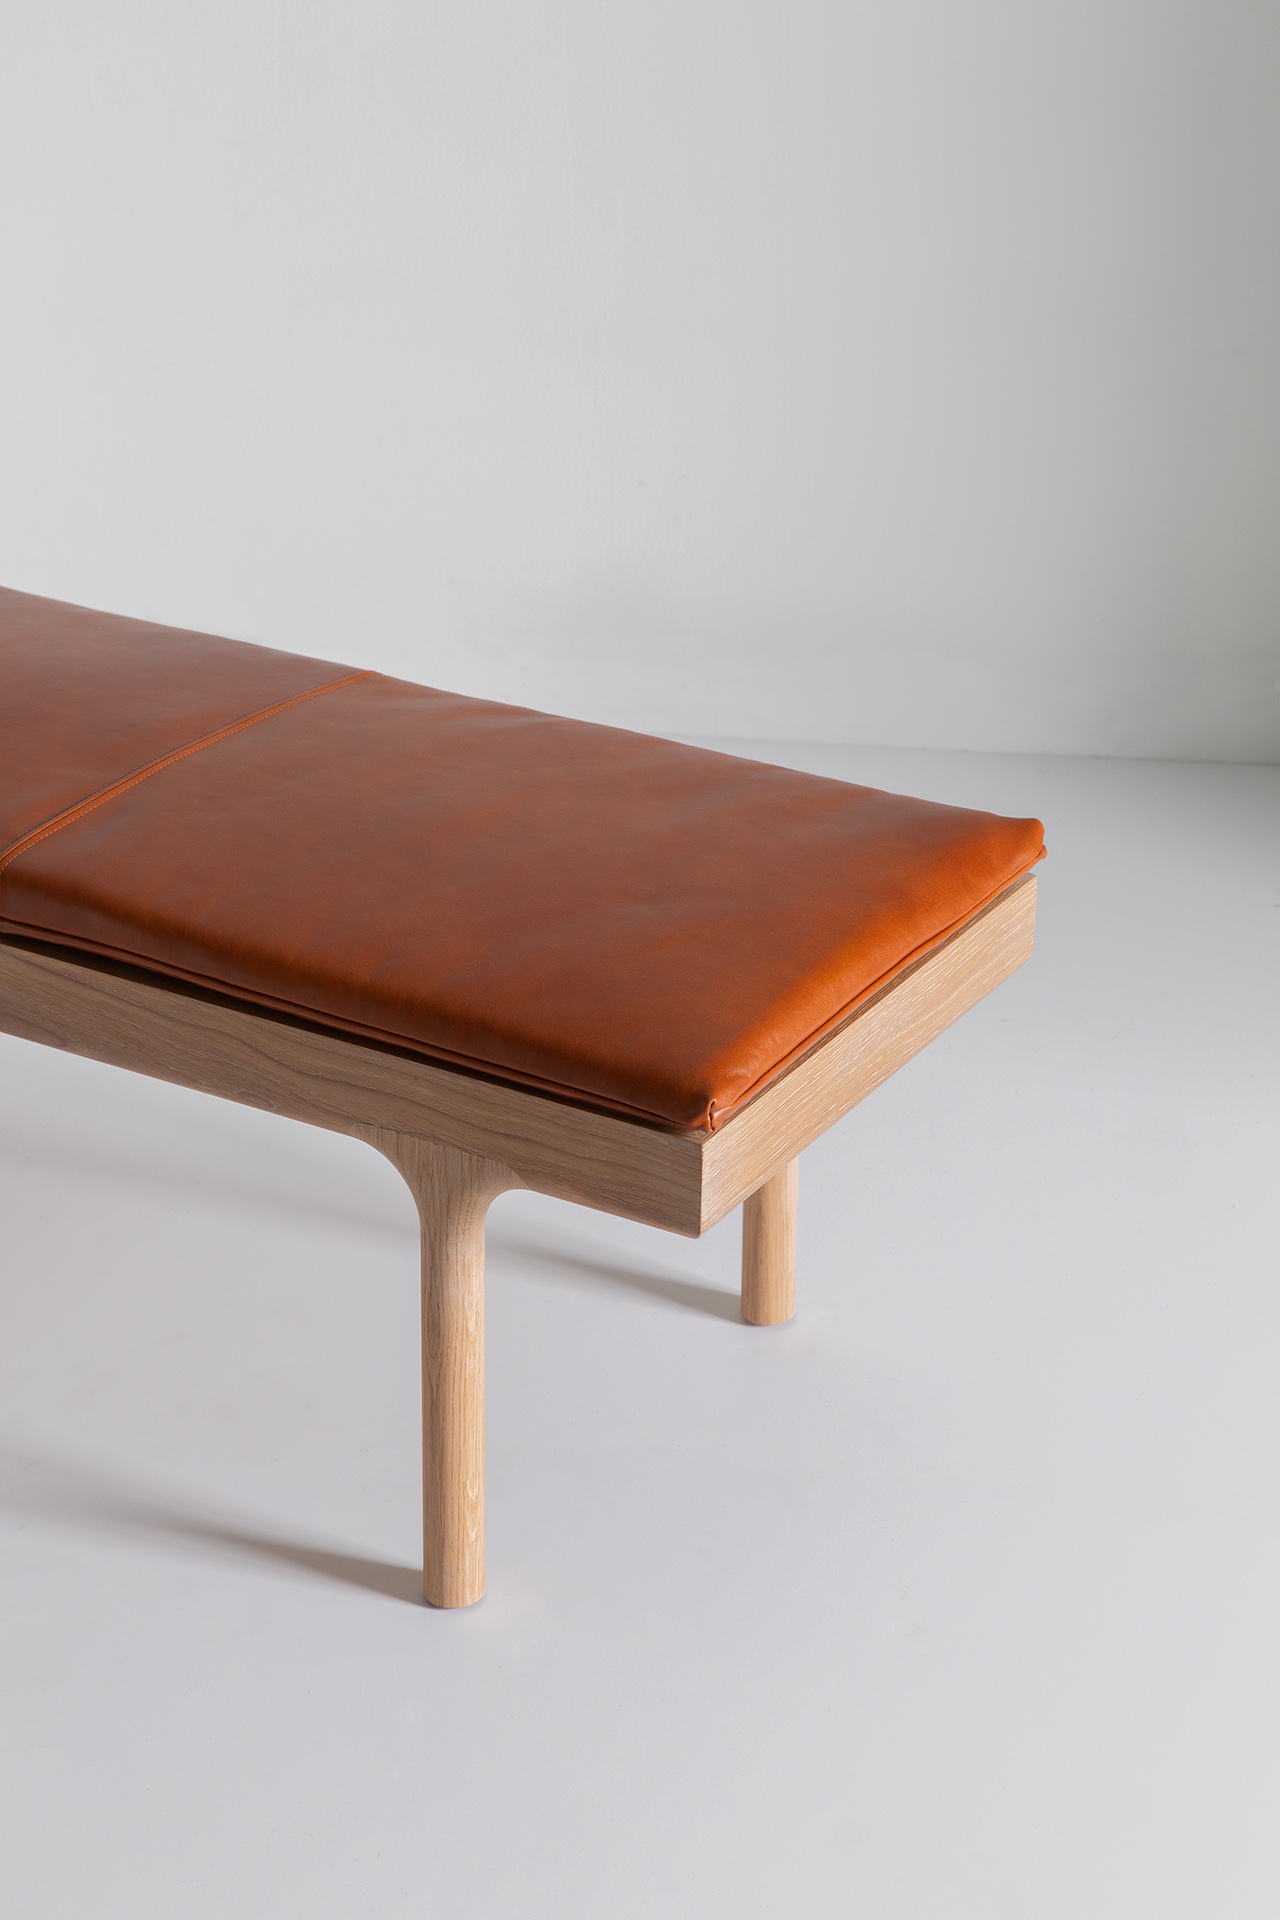 detail of leather topped bench on light background